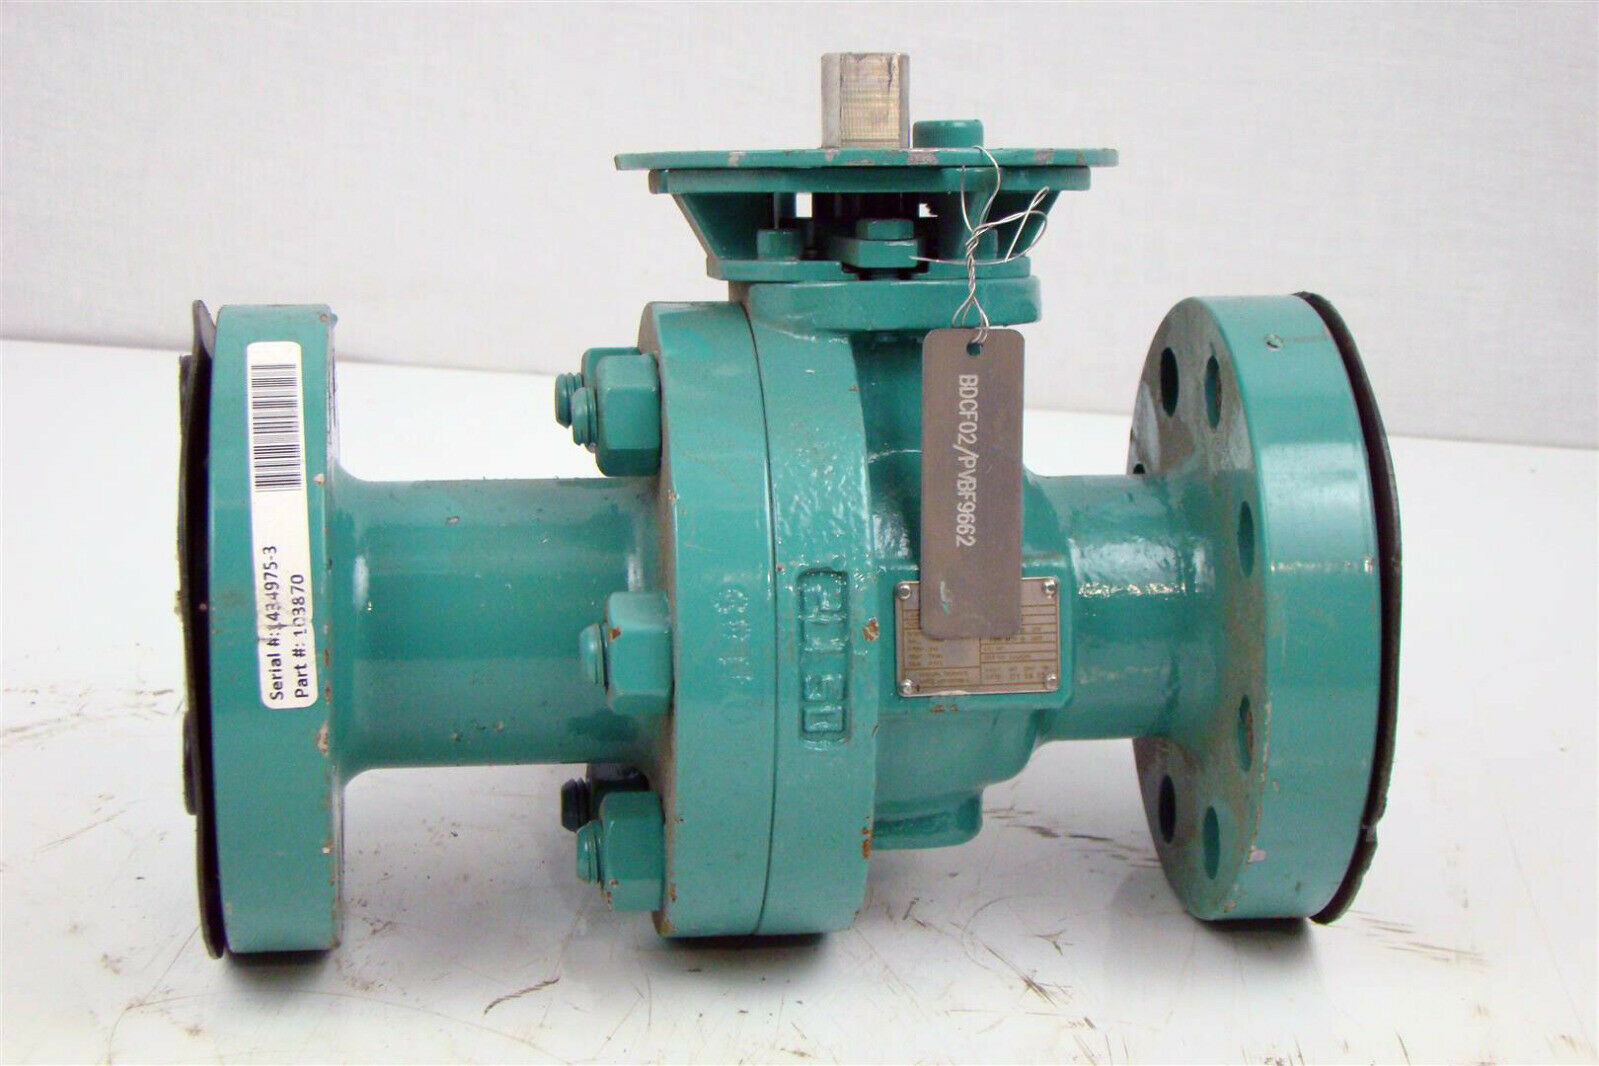 Details about Forum PBV Flanged Floating Ball Valve, 2